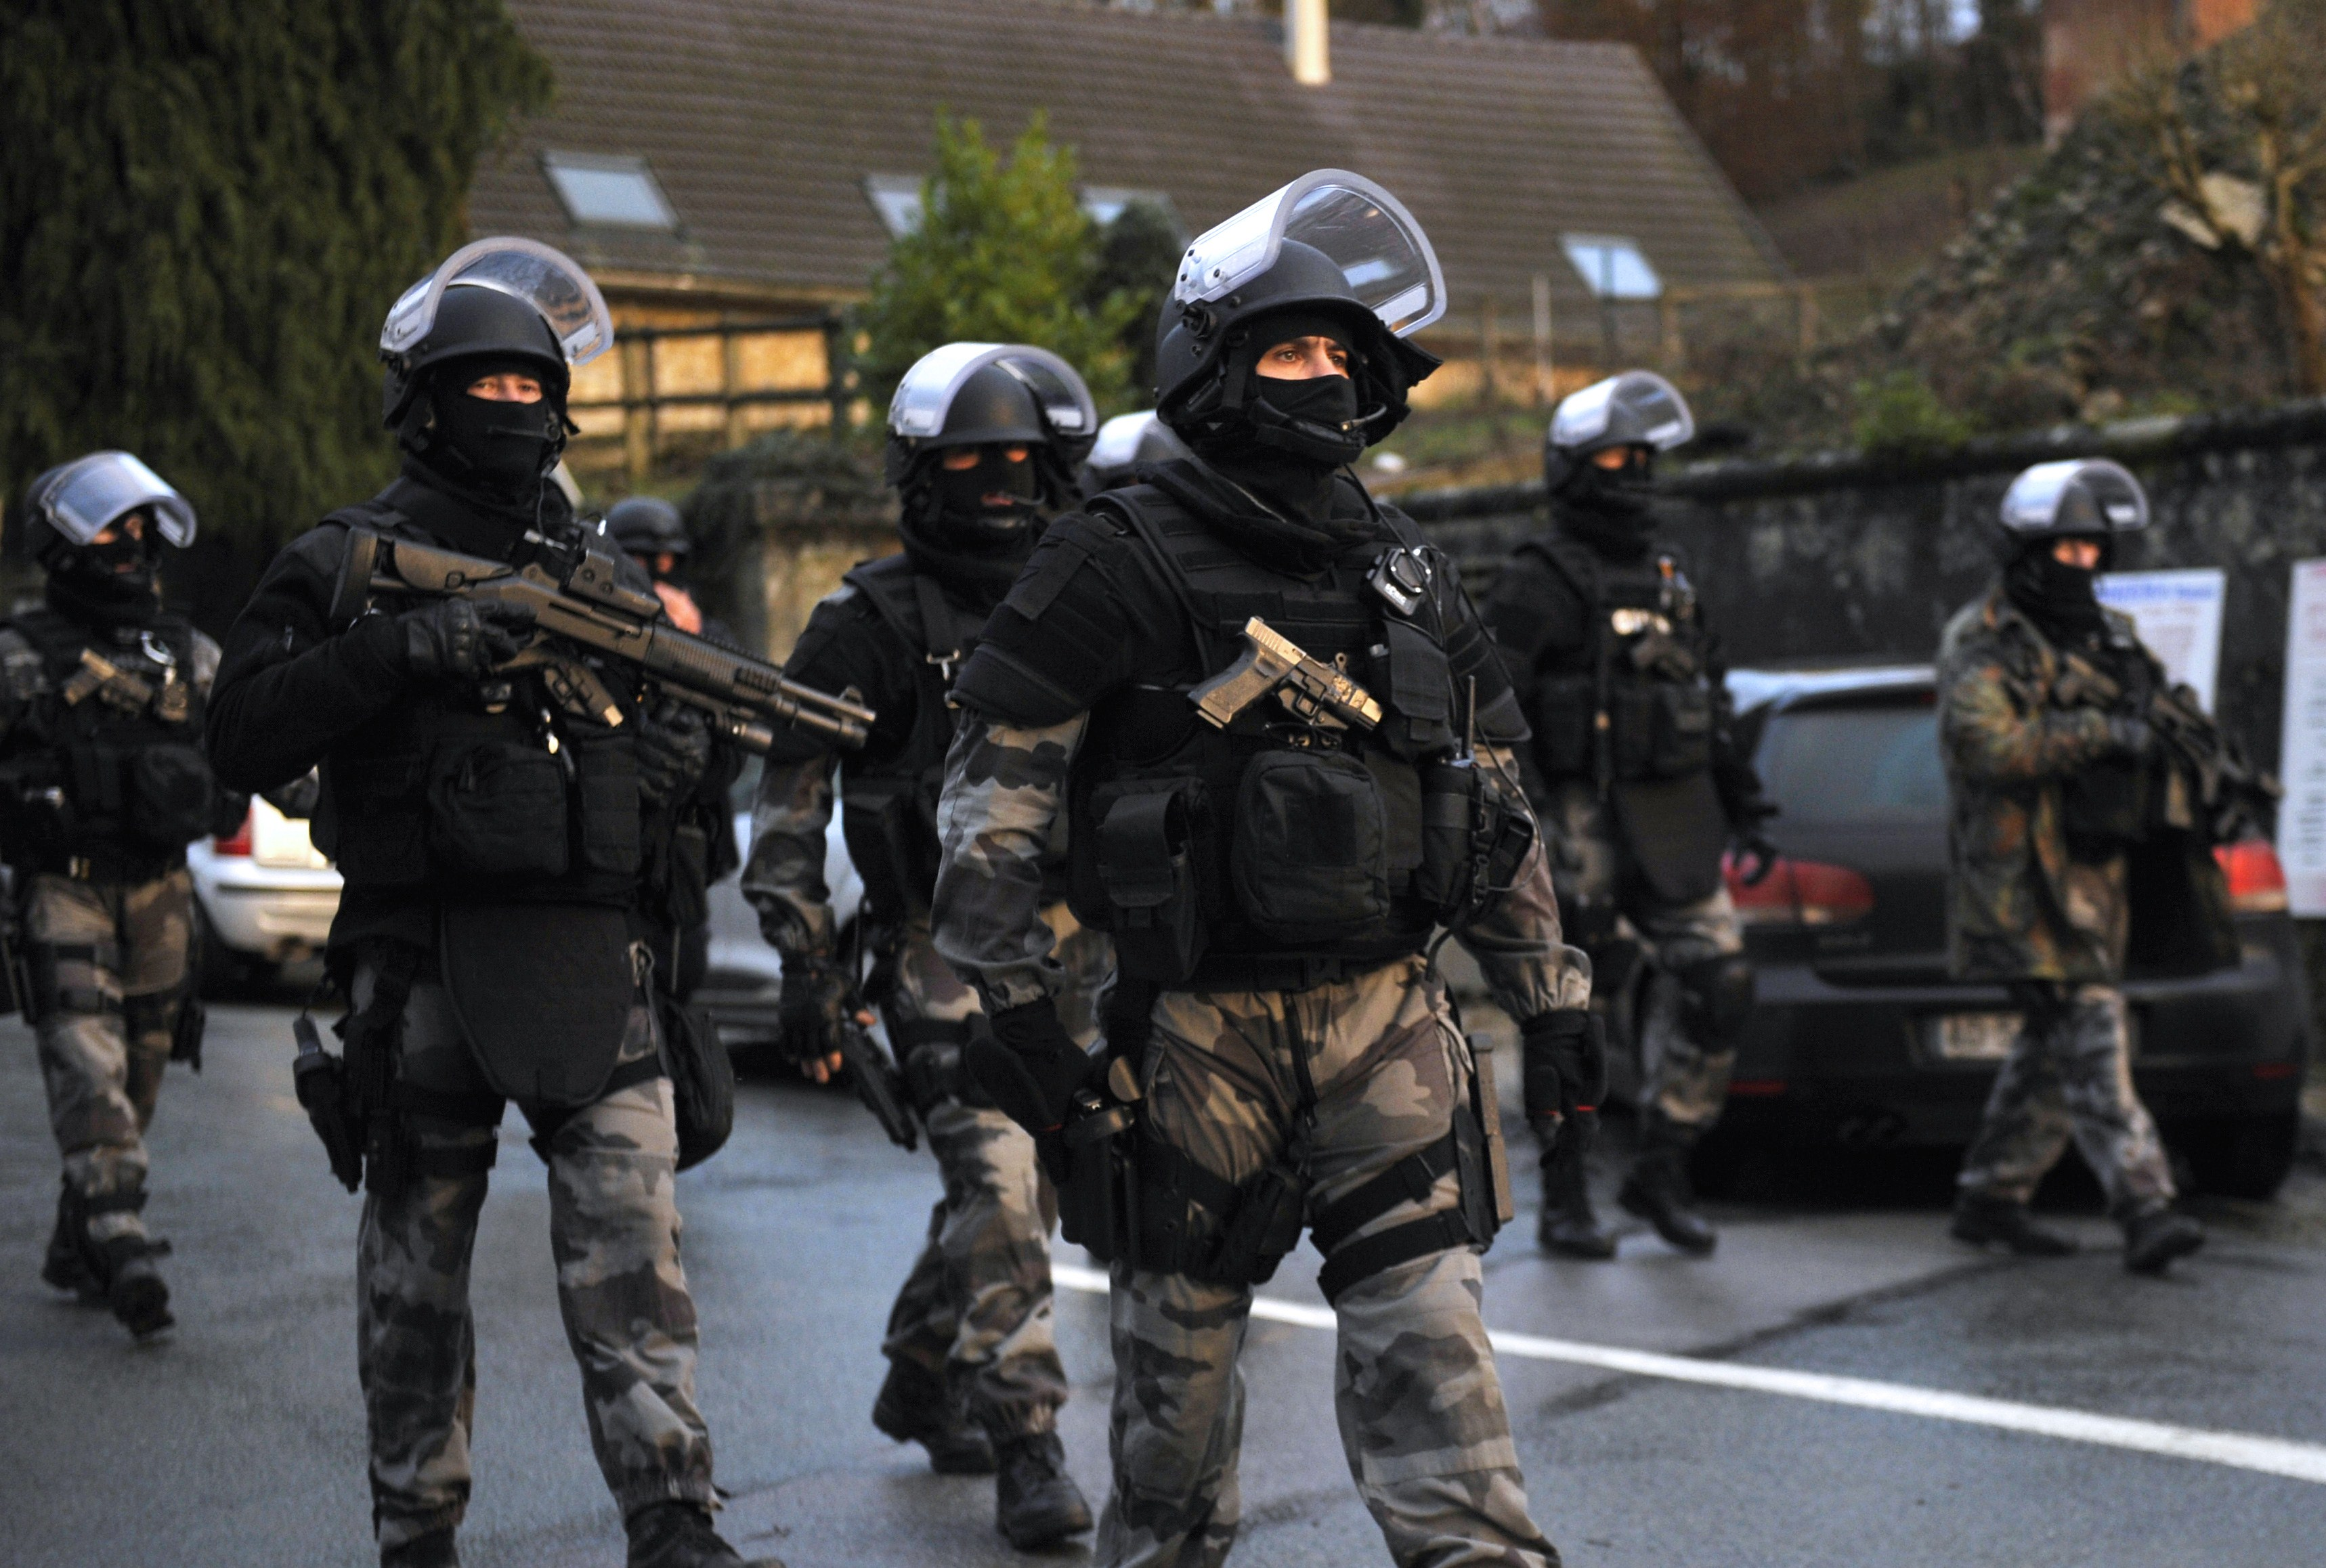 Members of the GIPN and RAID, French police special forces, walk in Corcy, northern France, on January 8, 2015 as they carry out searches as part of an investigation into a deadly attack the day before by armed gunmen on the Paris offices of French satirical weekly Charlie Hebdo.